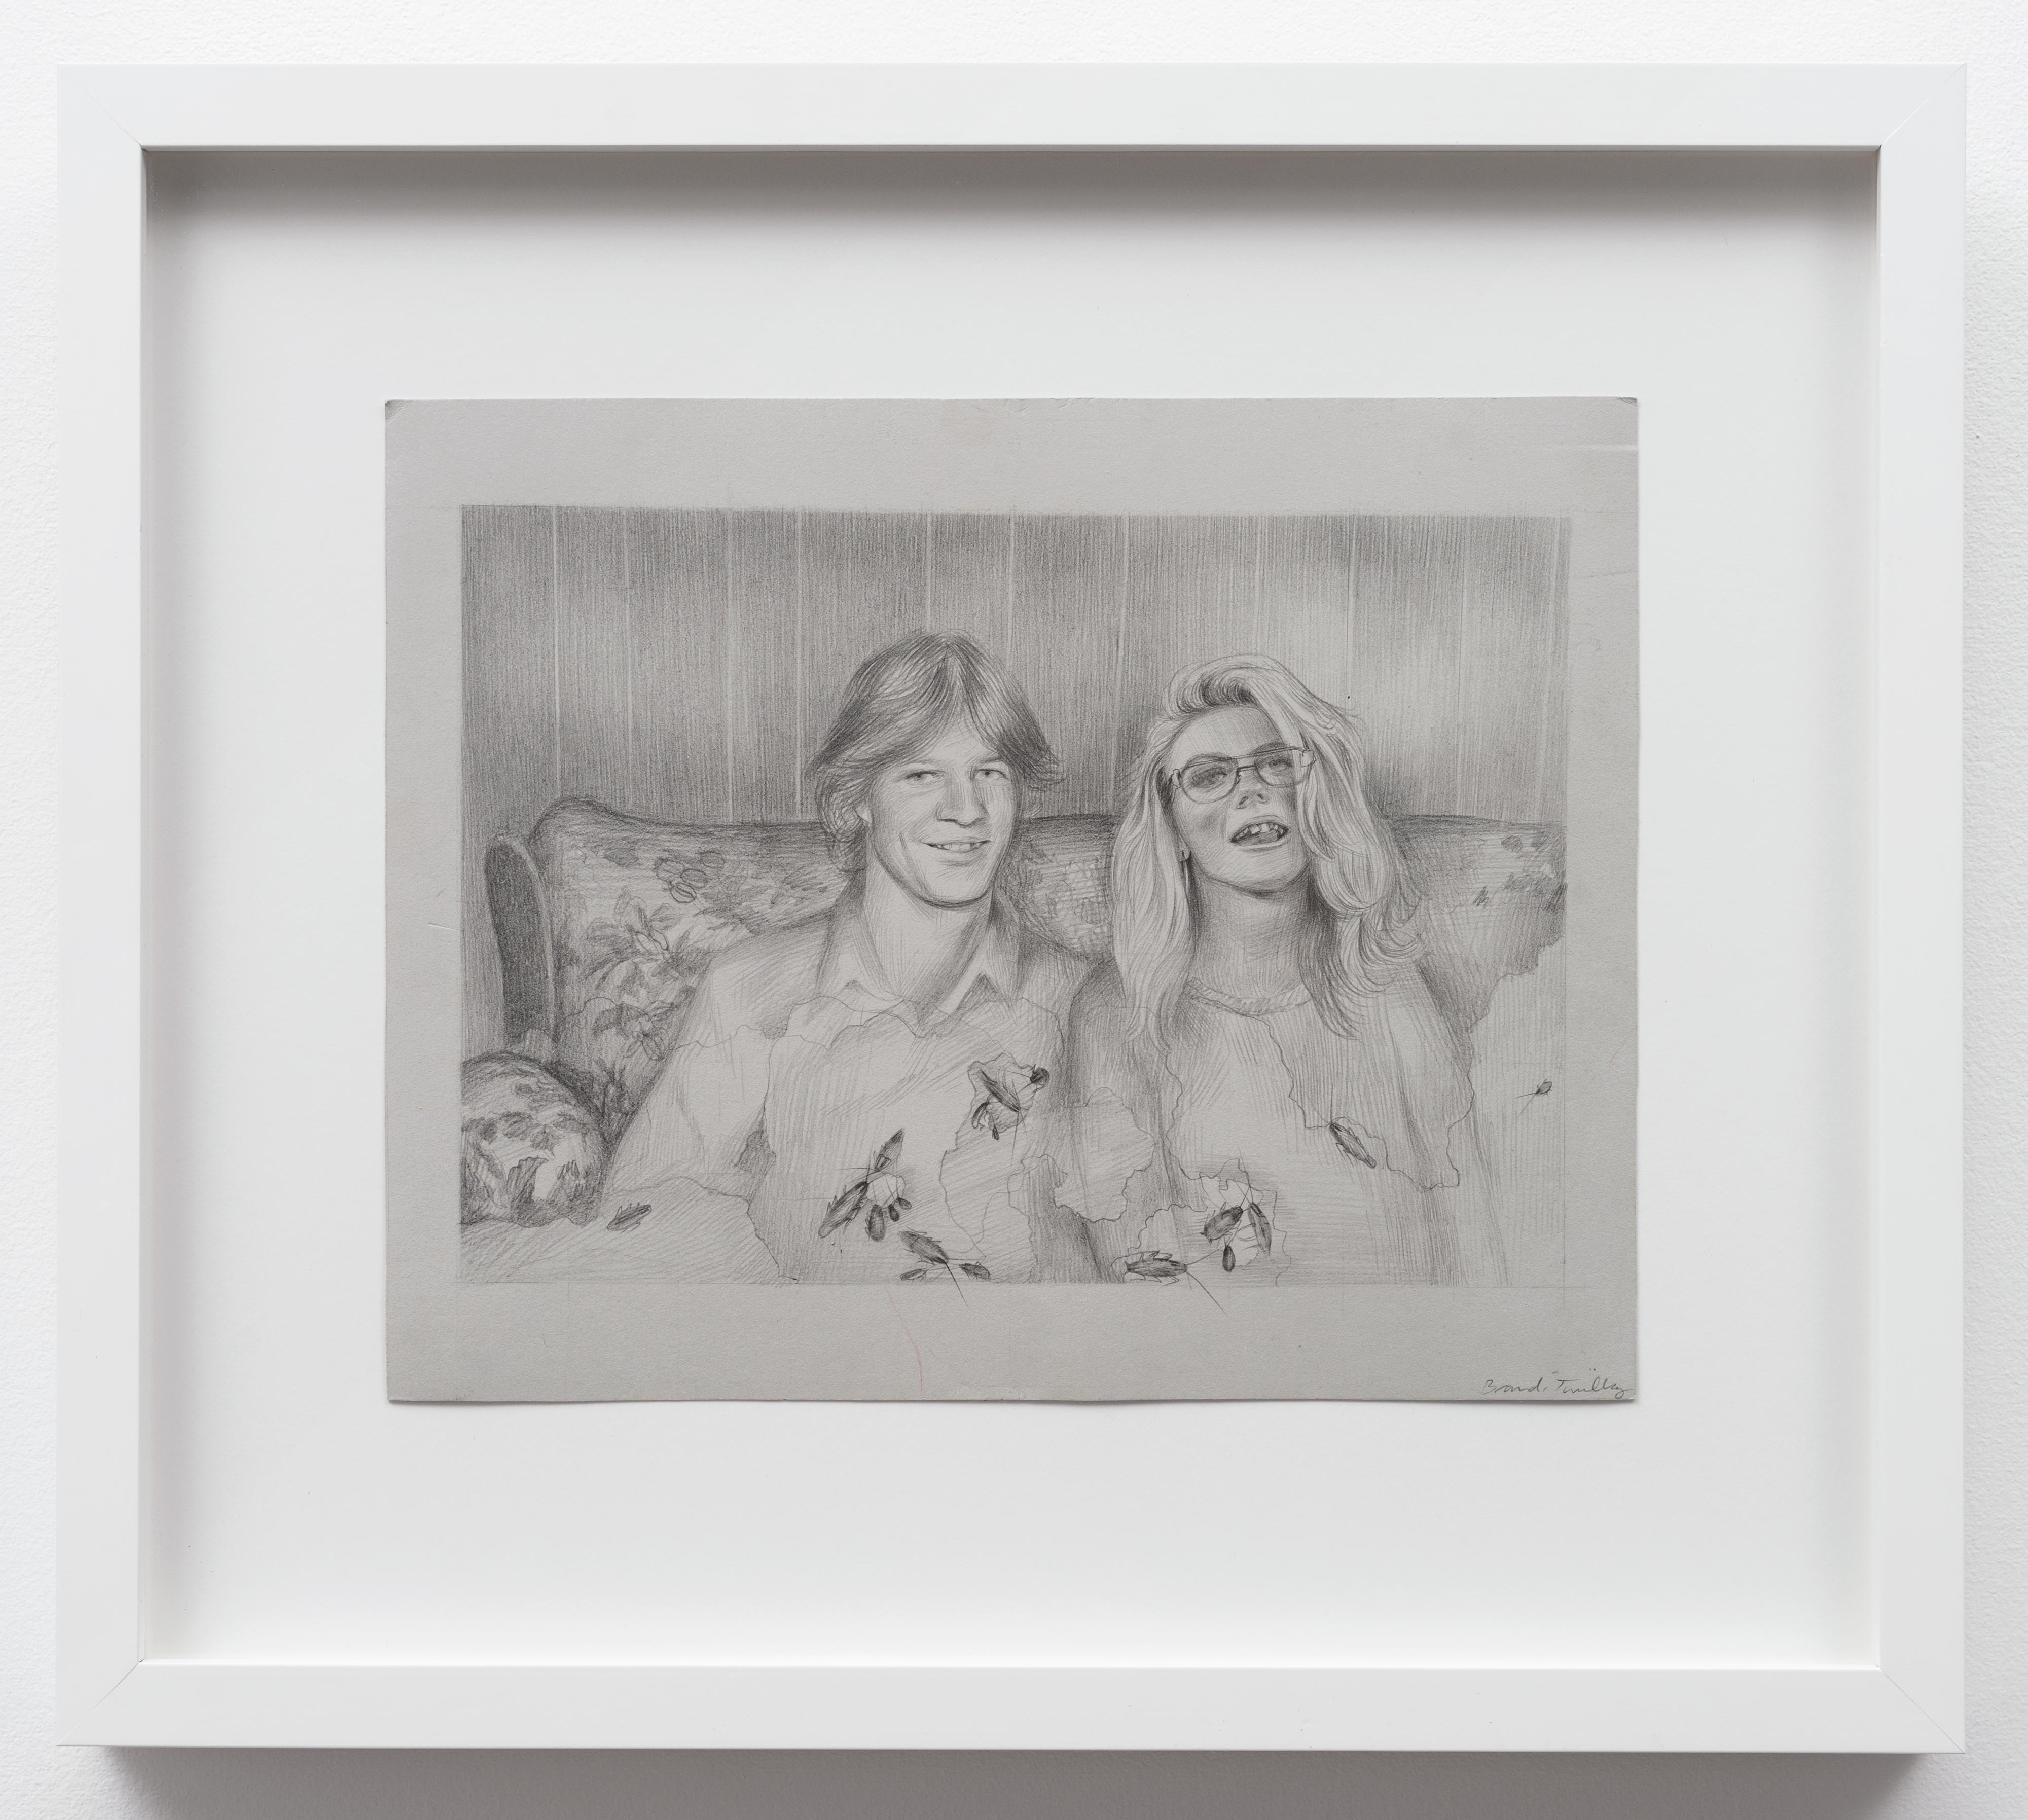 Brandi Twilley<br>On the Couch with Roaches<br>2015<br>Graphite on gray paper<br>9 x 11.5 in (23 x 29 cm)